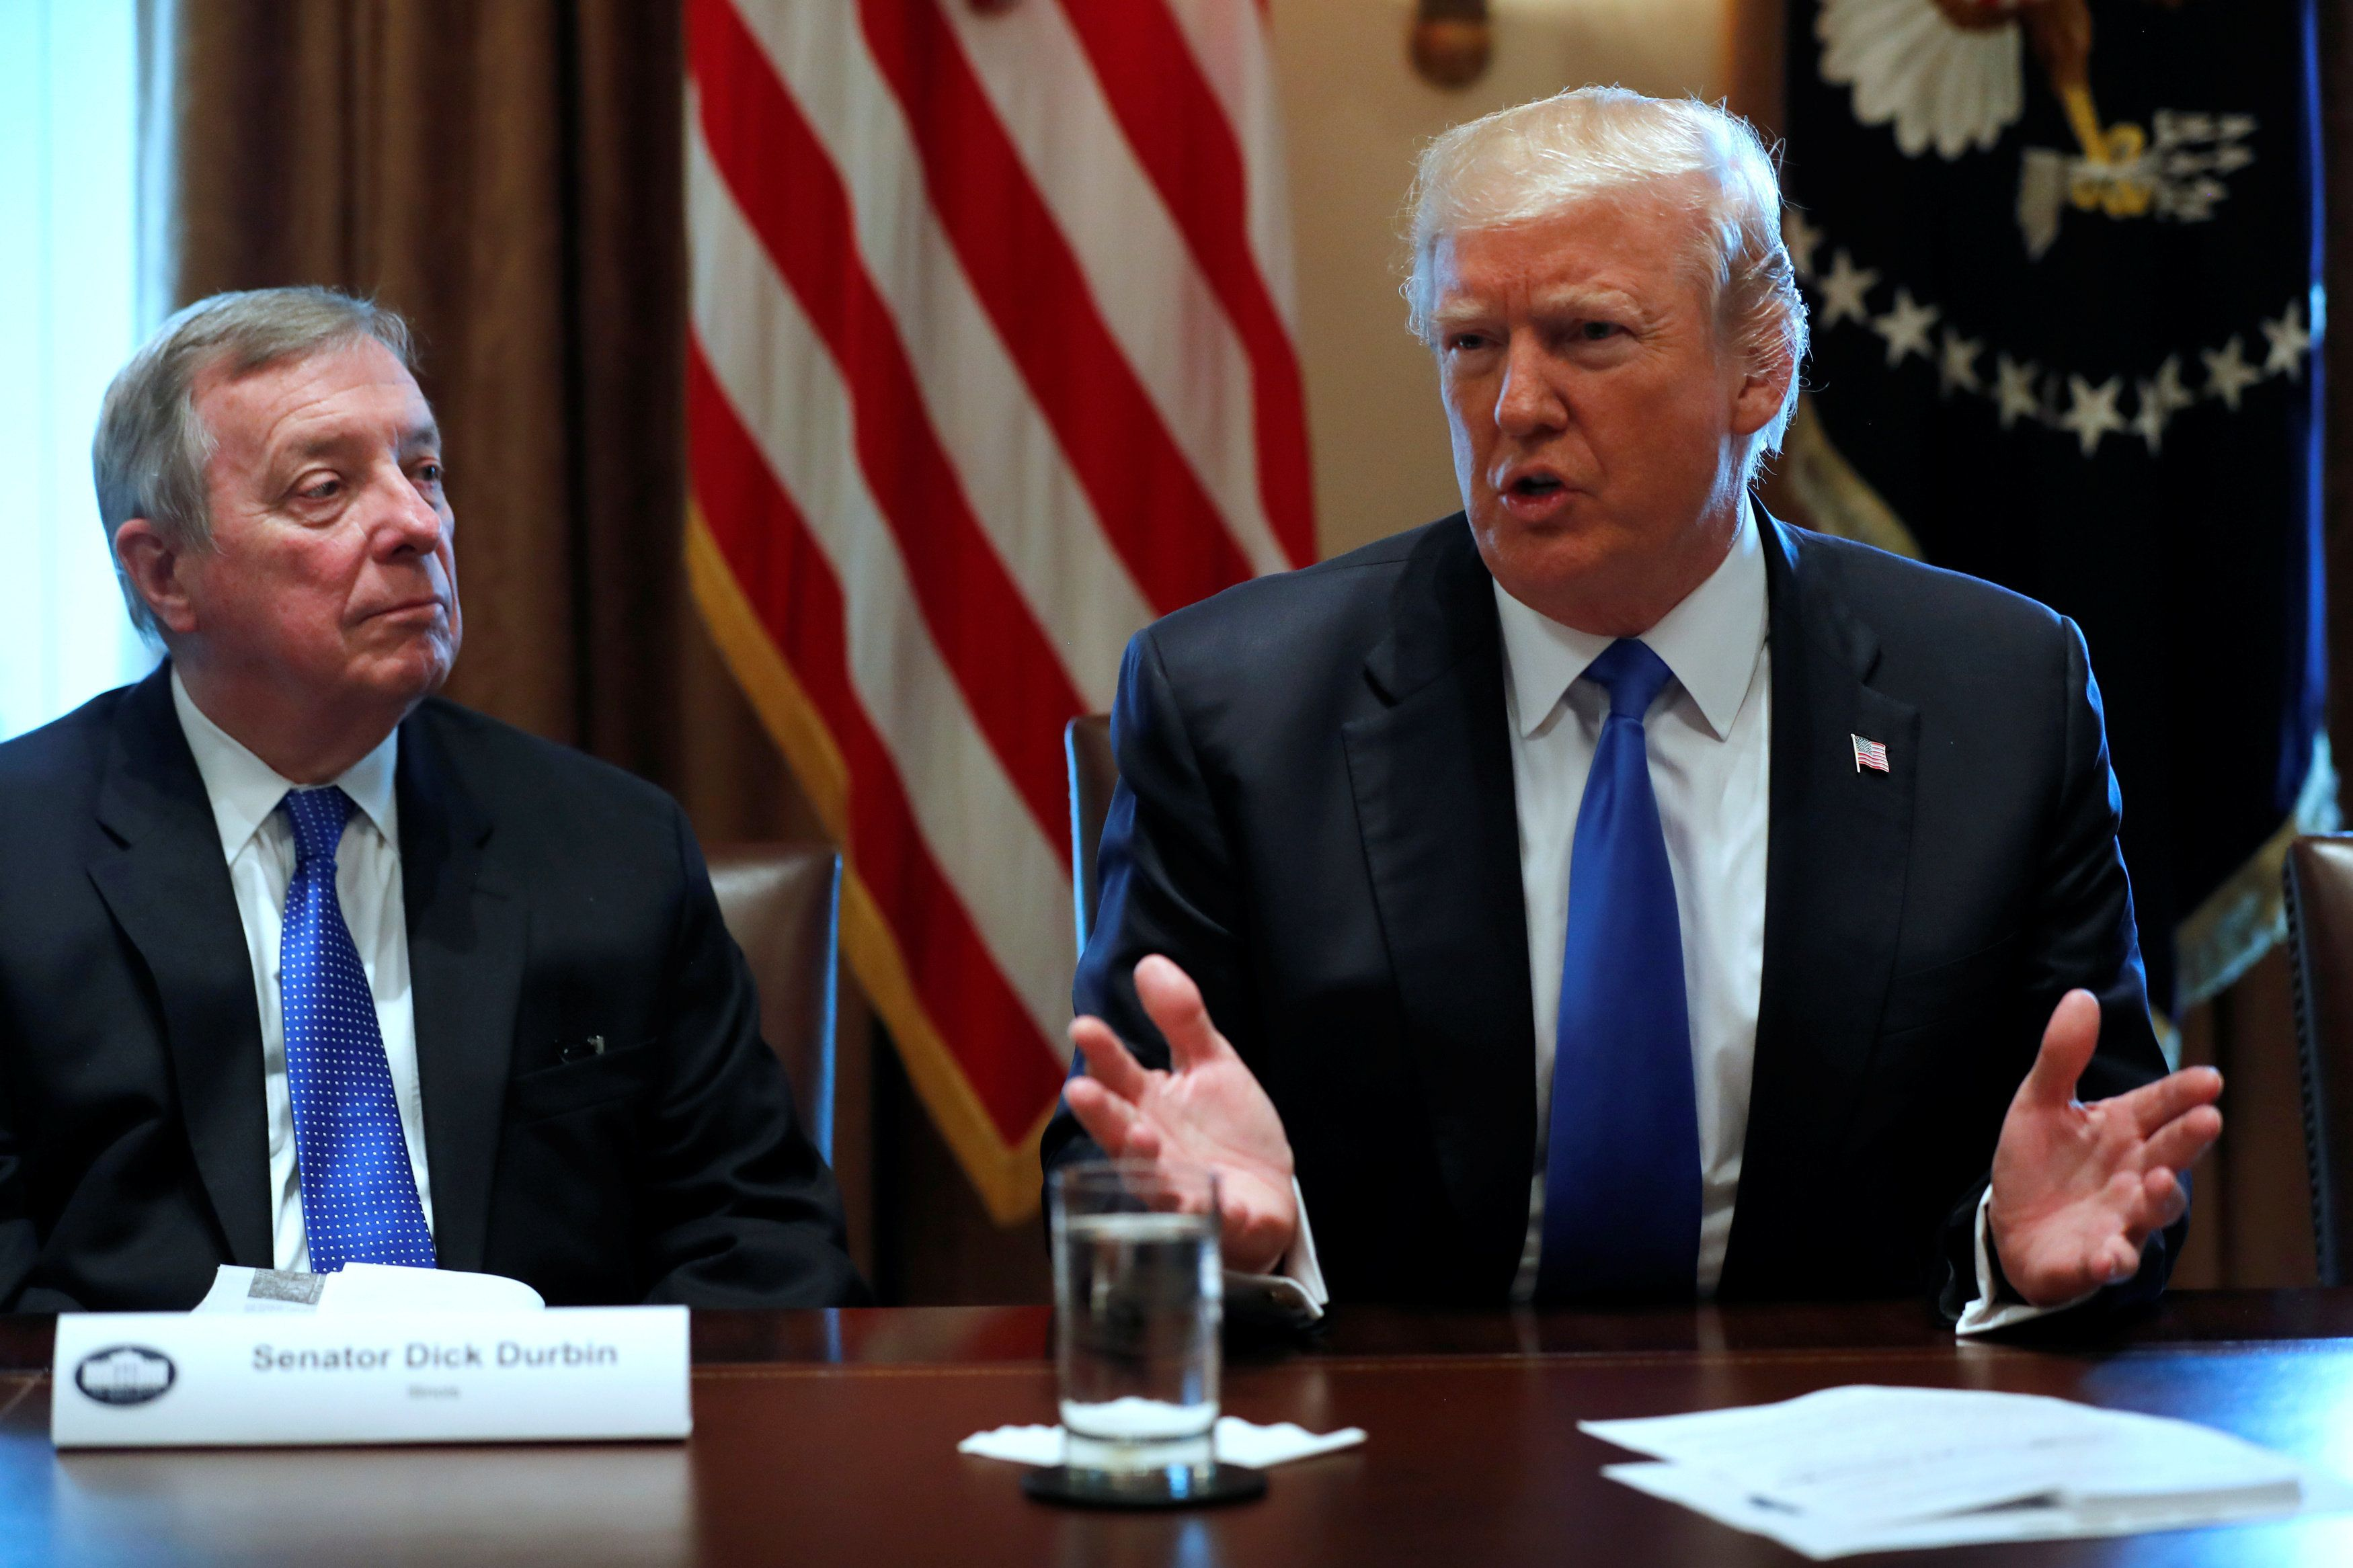 U.S. President Donald Trump, flanked by U.S. Senator Dick Durbin (D-IL), holds a bipartisan meeting with legislators on immigration reform at the White House in Washington, U.S. January 9, 2018.  REUTERS/Jonathan Ernst